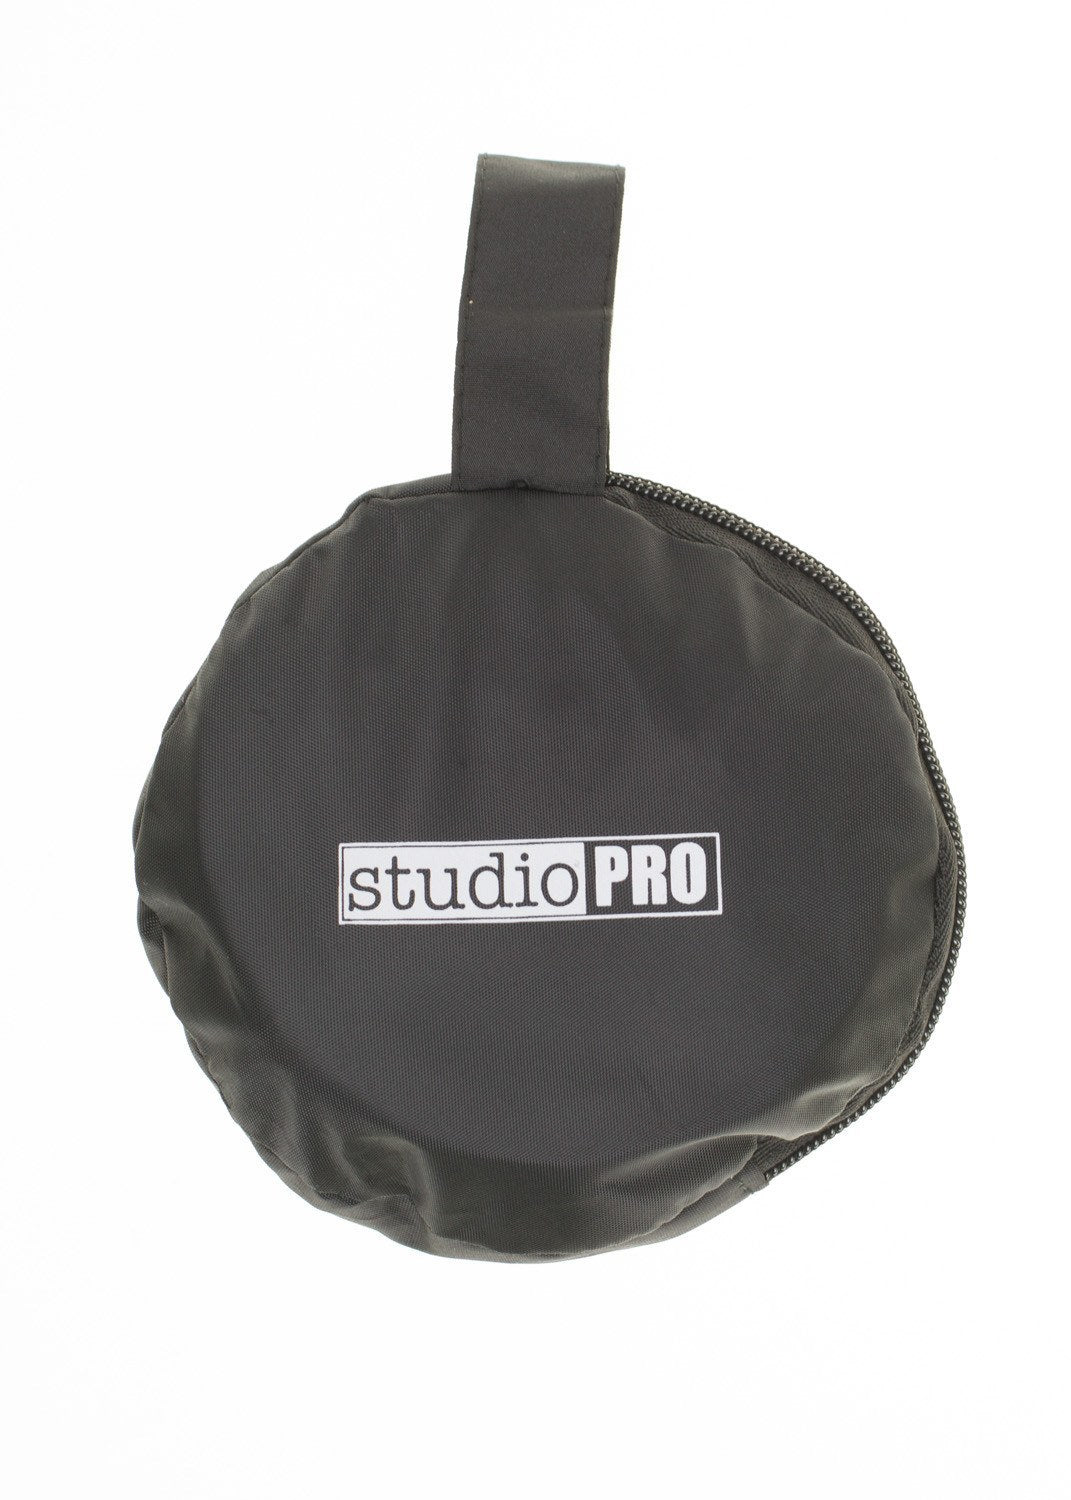 StudioPRO Pop Out Flash Disc Portable Speedlight Softbox -  - 5